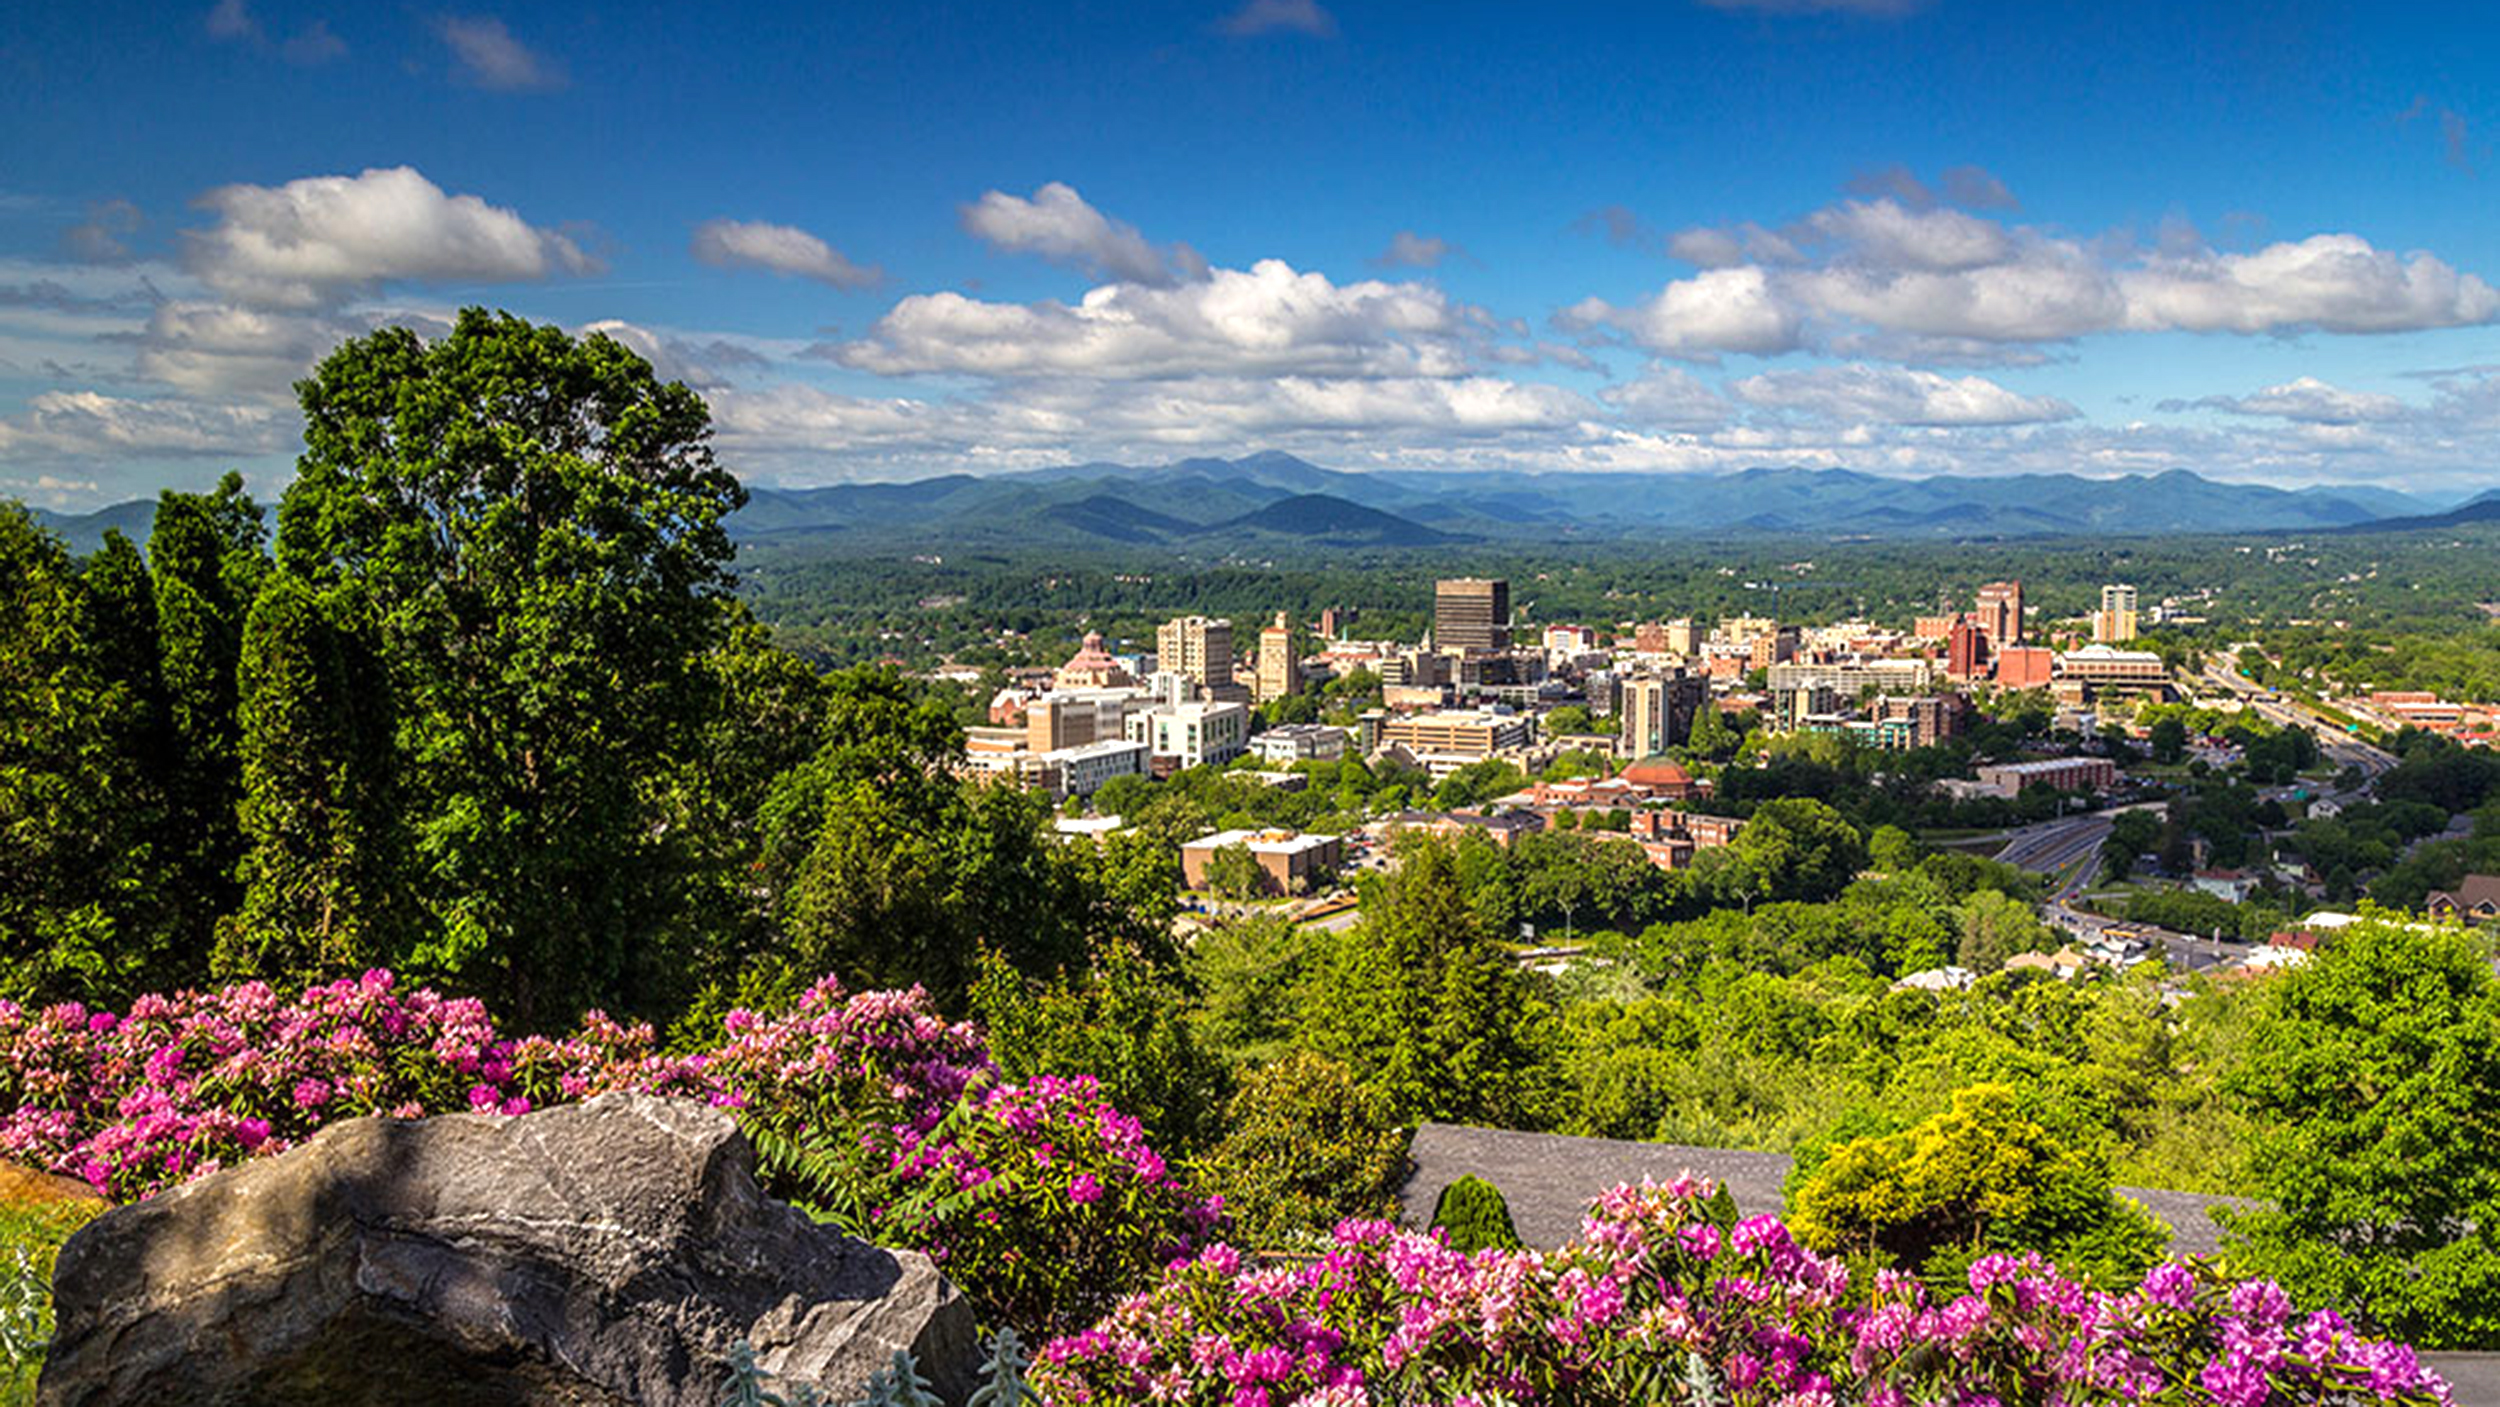 from Tomas gay travel asheville nc